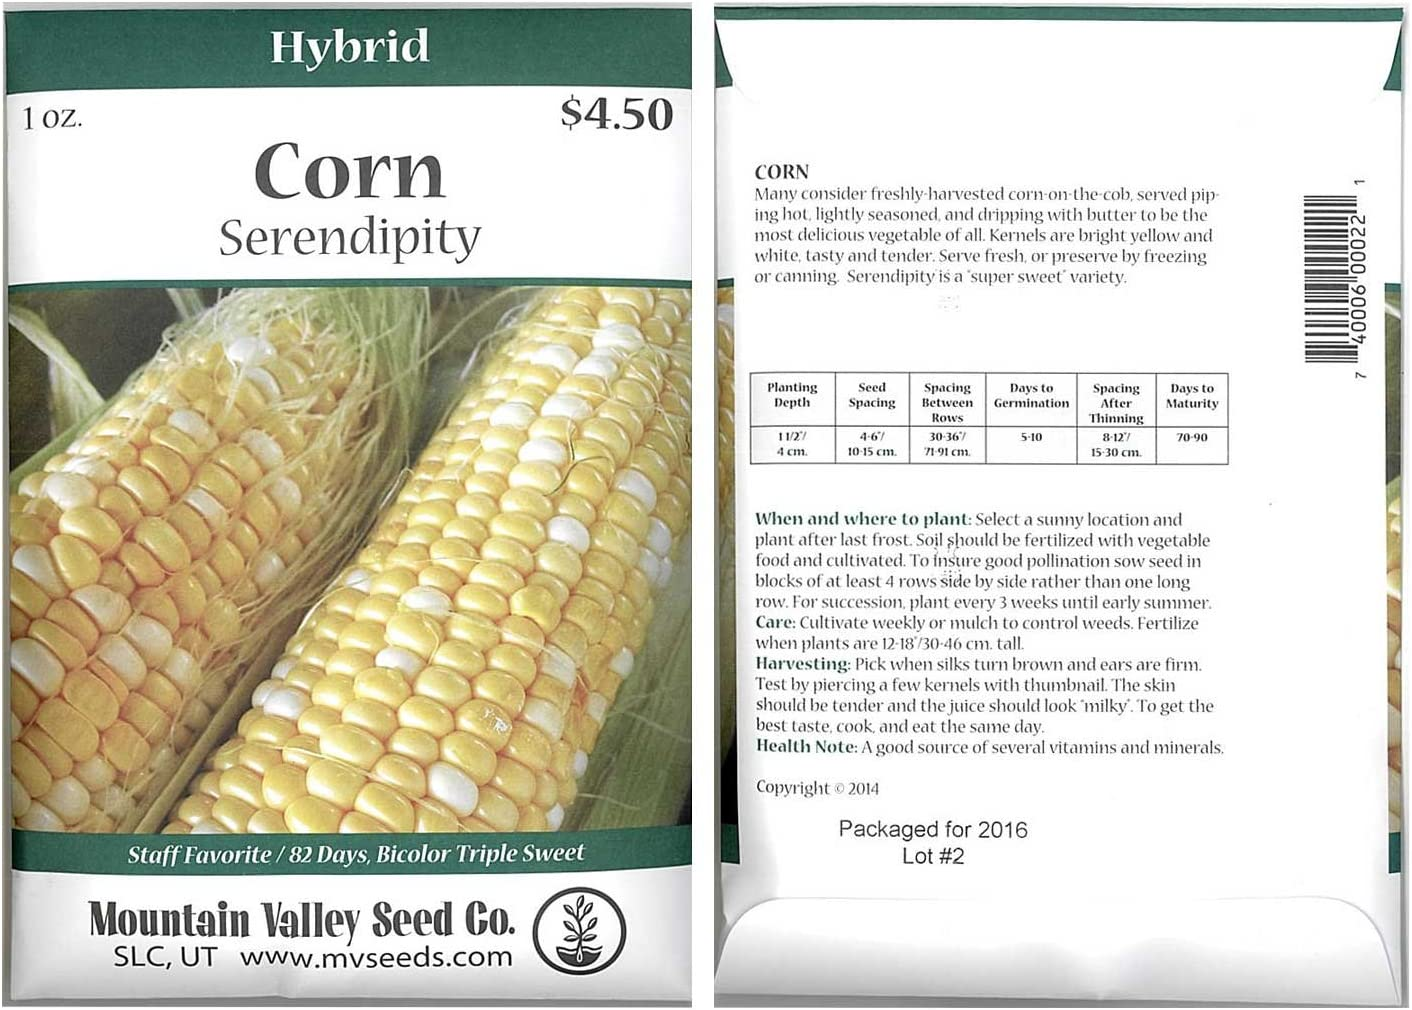 Serendipity Hybrid Triplesweet Corn Garden Seeds - 1 Oz Packet ~175 Seeds - Non-GMO Vegetable Gardening Seeds - Bicolor Triple Sweet Corn